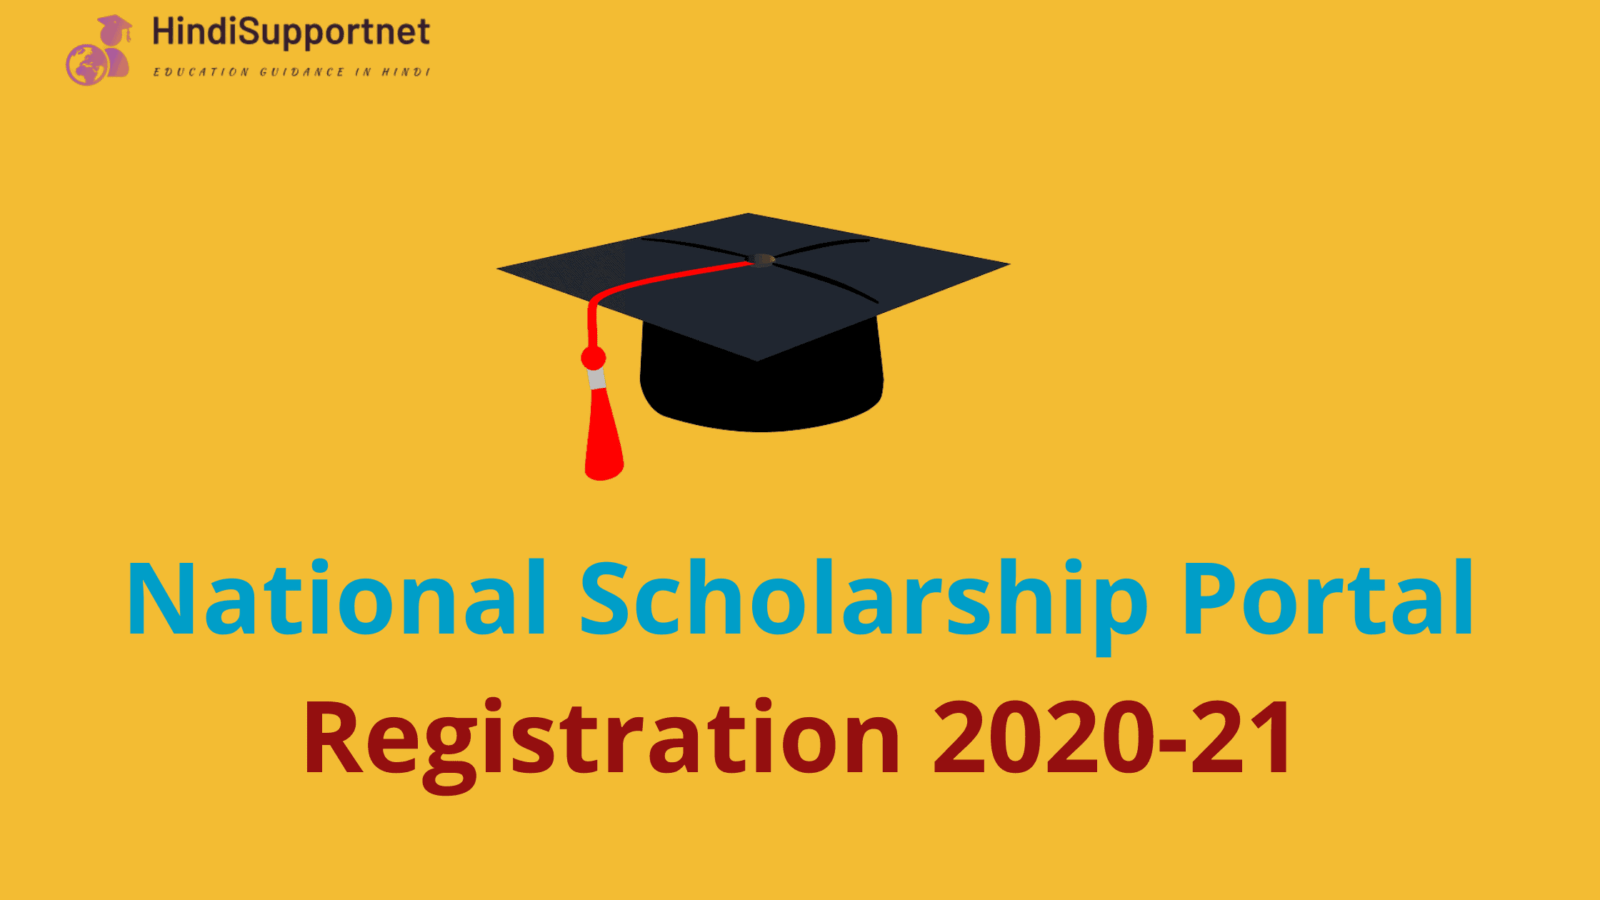 National Scholarship Portal Registration 2020-21